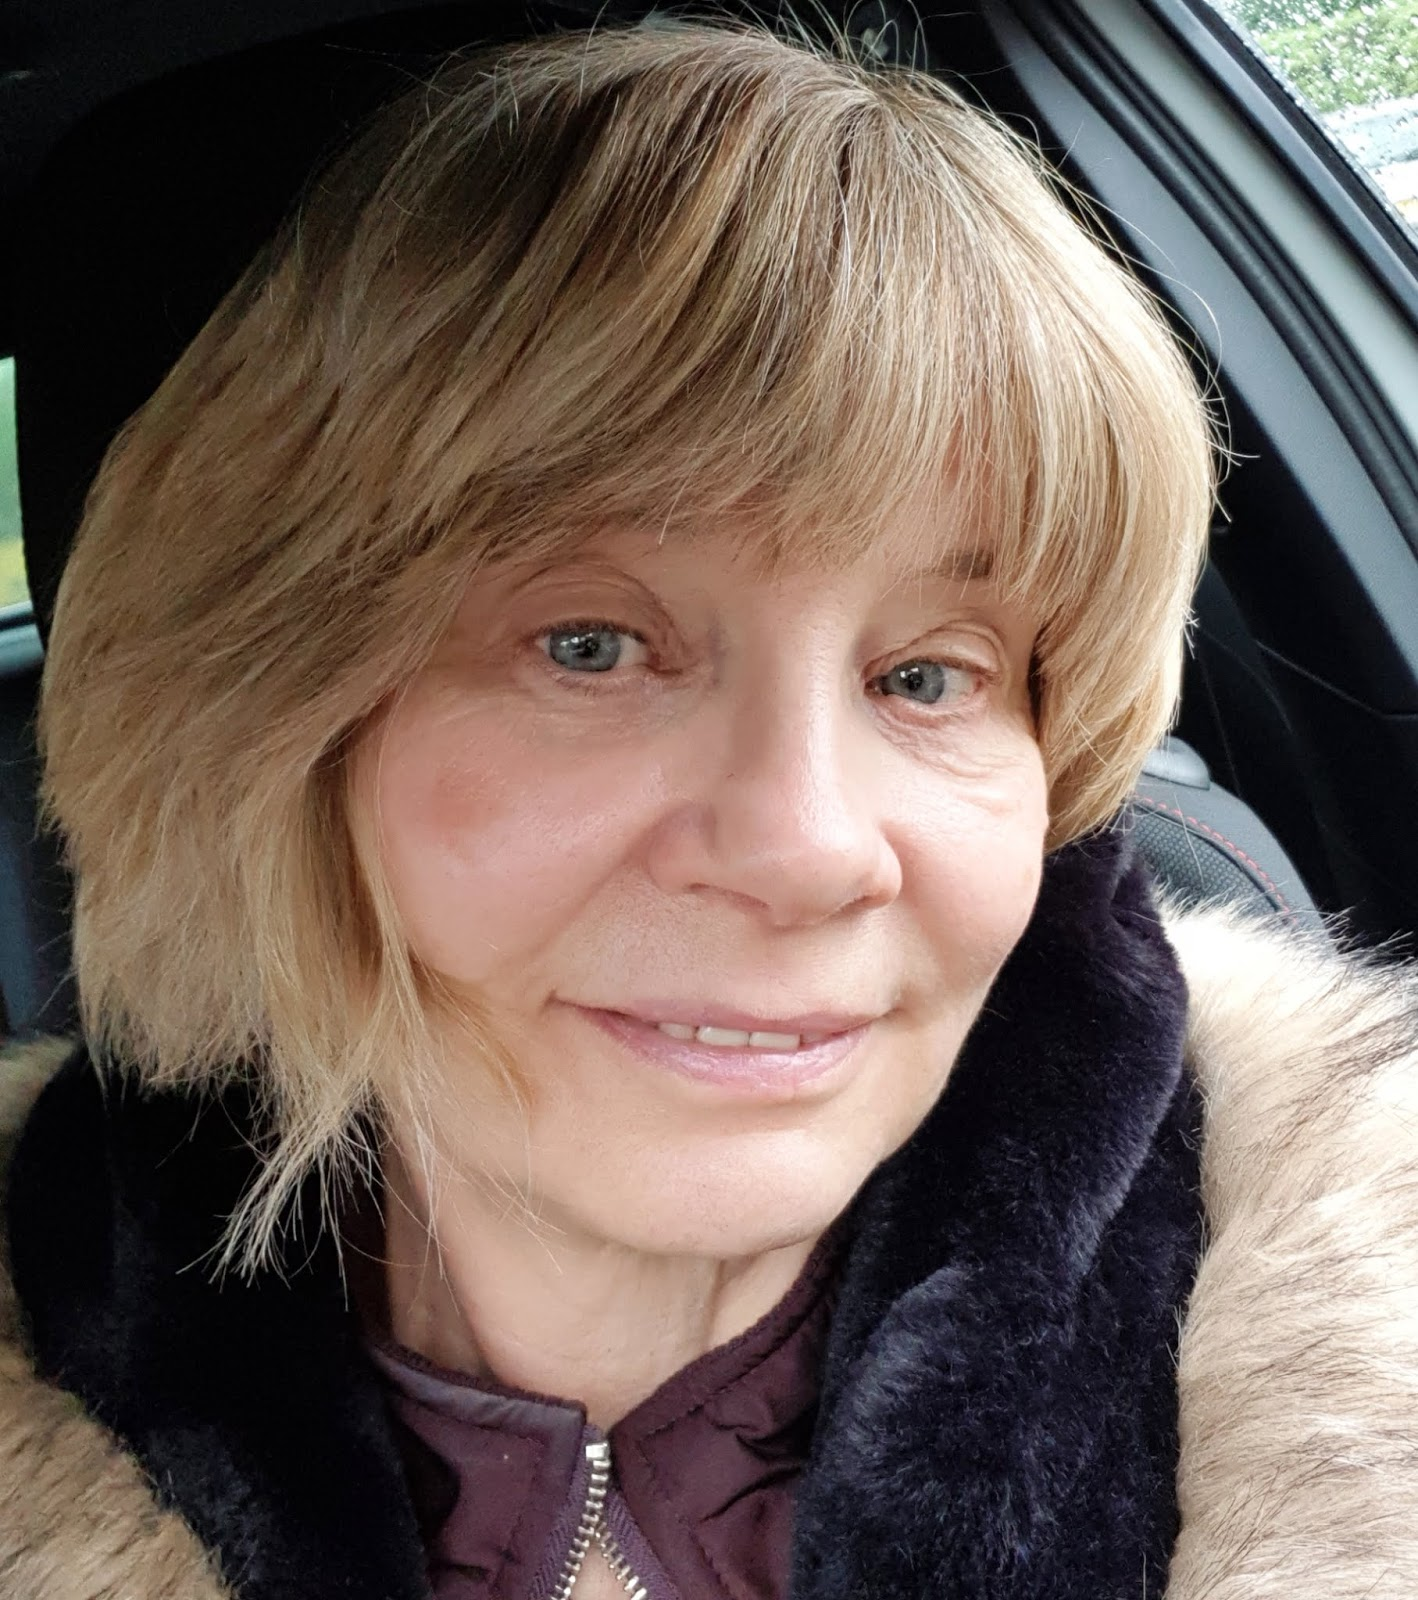 Over 50s blogger Gail Hanlon after a facial aimed at stimulating collagen production